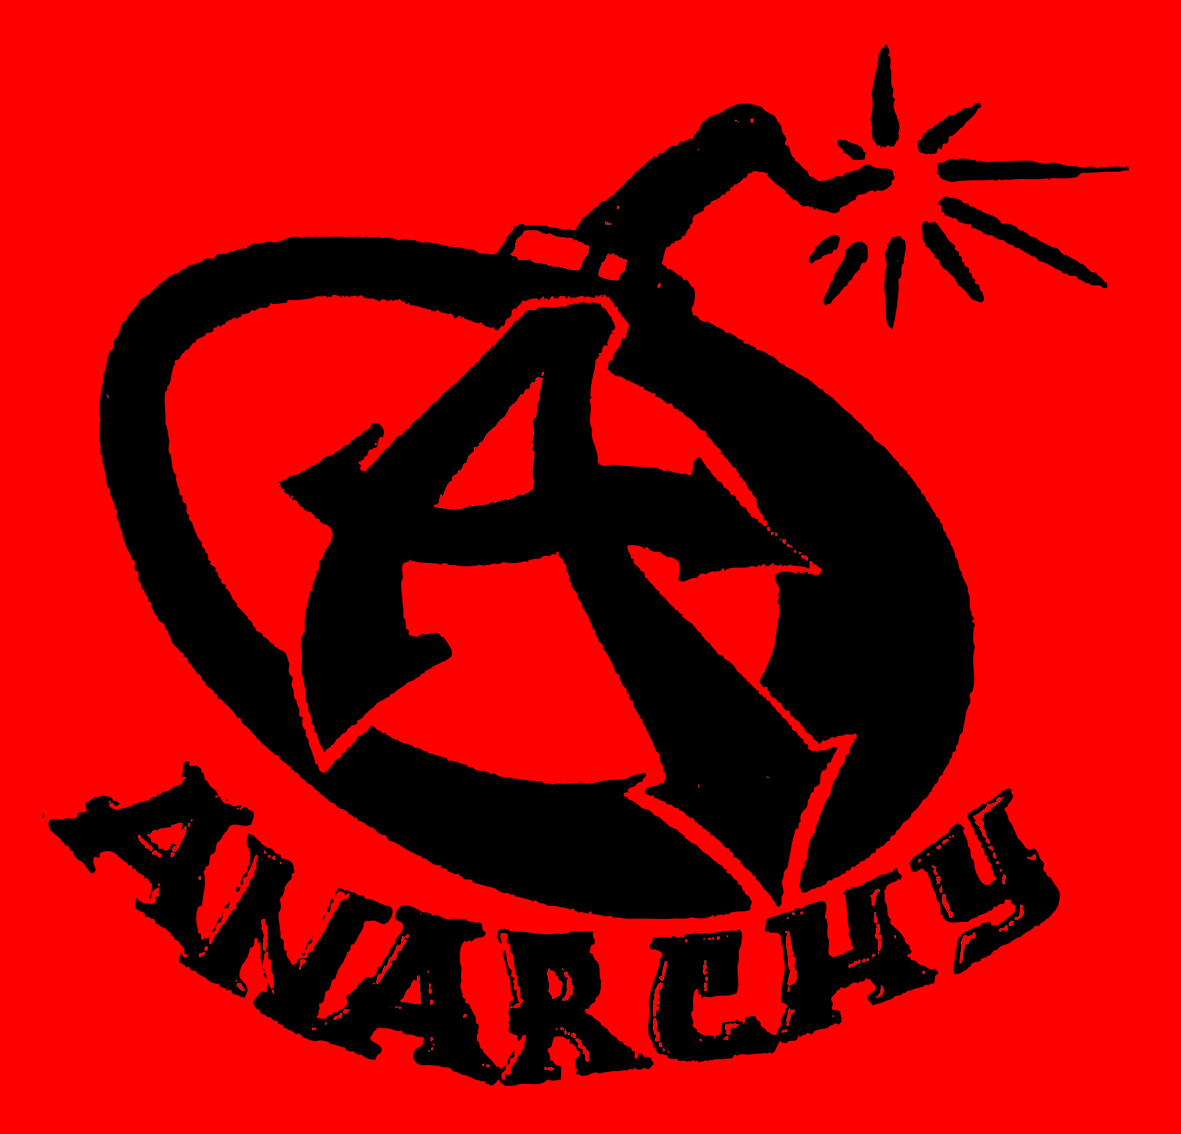 ANARCHY BOMBE